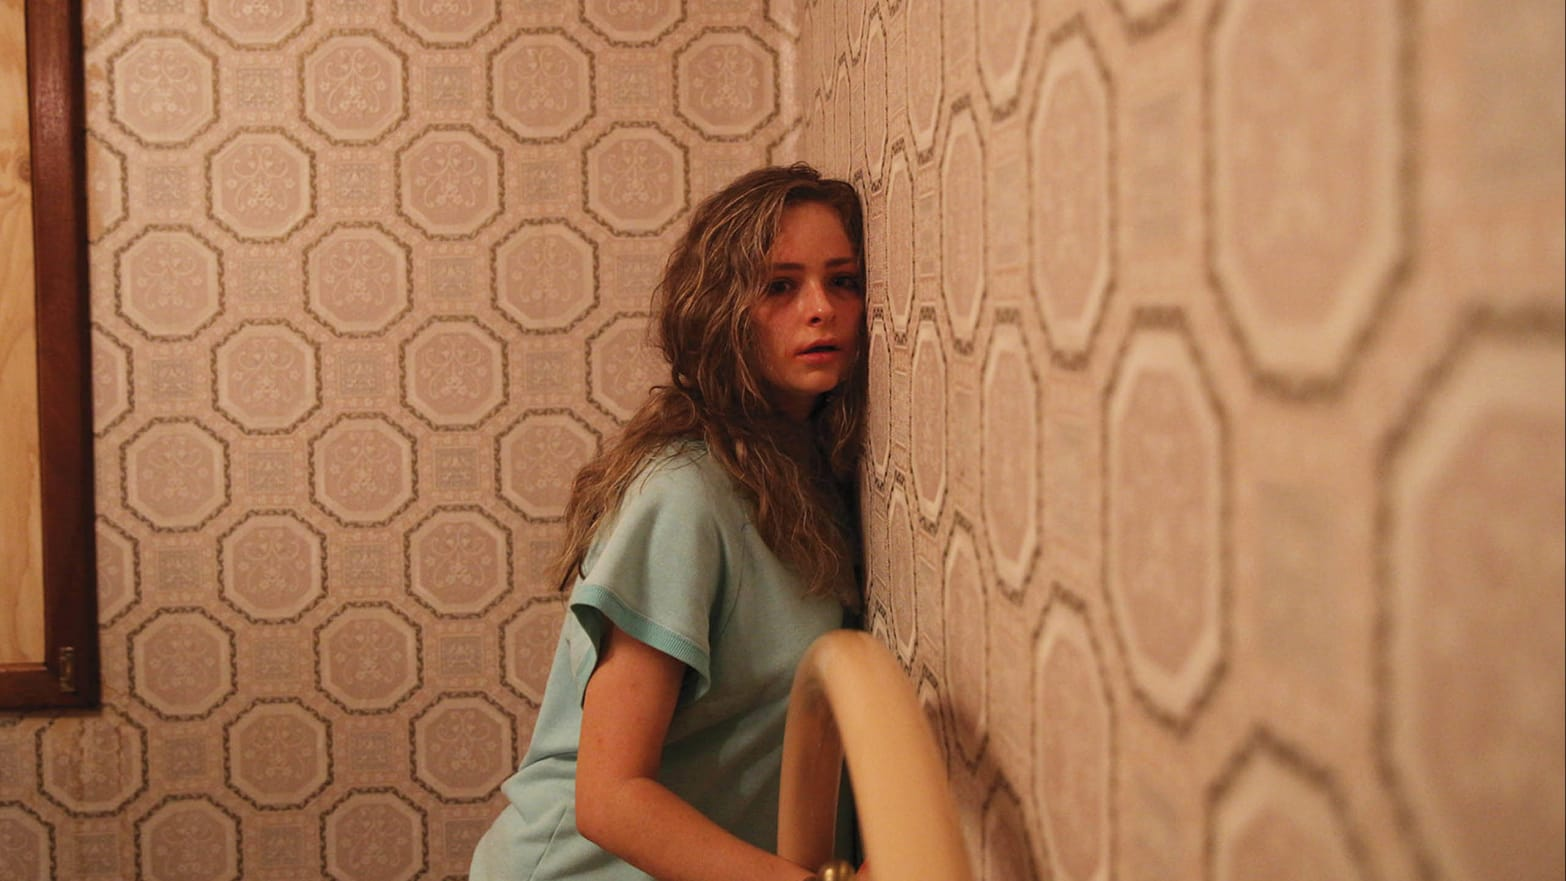 Bedroom Eyes Full Movie 2017 hounds of love' is one of the most disturbing movies of the year